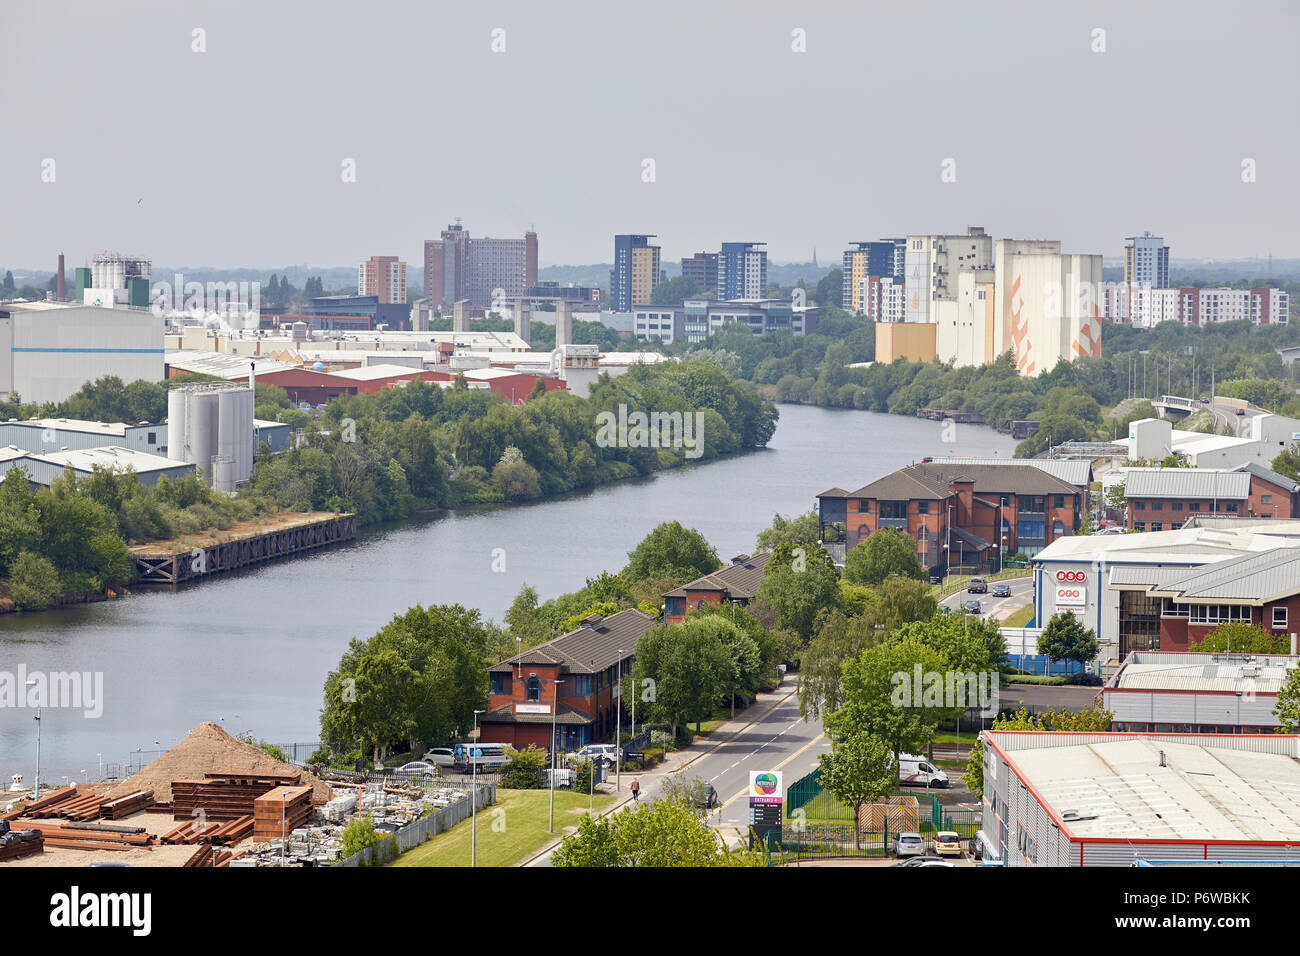 industry along the banks of Manchester Ship canal looking out over Salford and Trafford Park - Stock Image